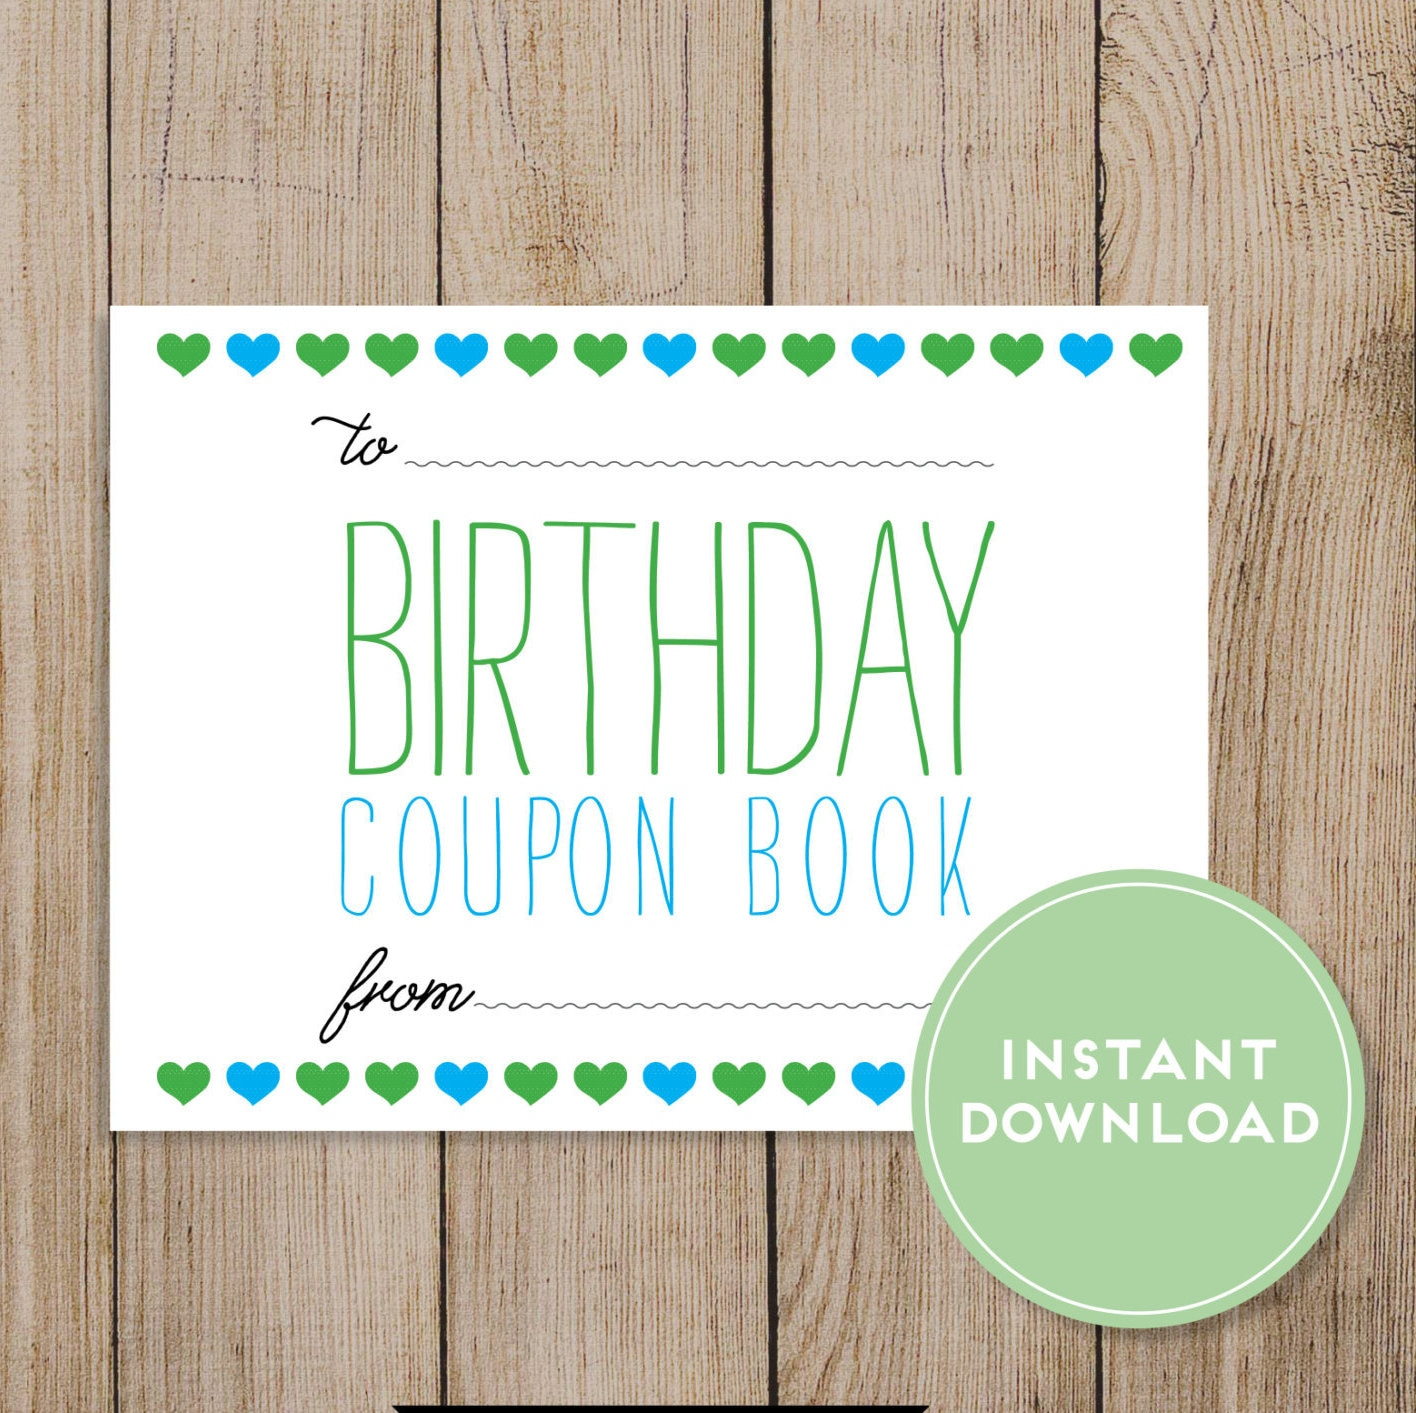 printable birthday coupon book editable pdf diy birthday gift husband wife boyfriend girlfriend mom dad daughter son birthday card